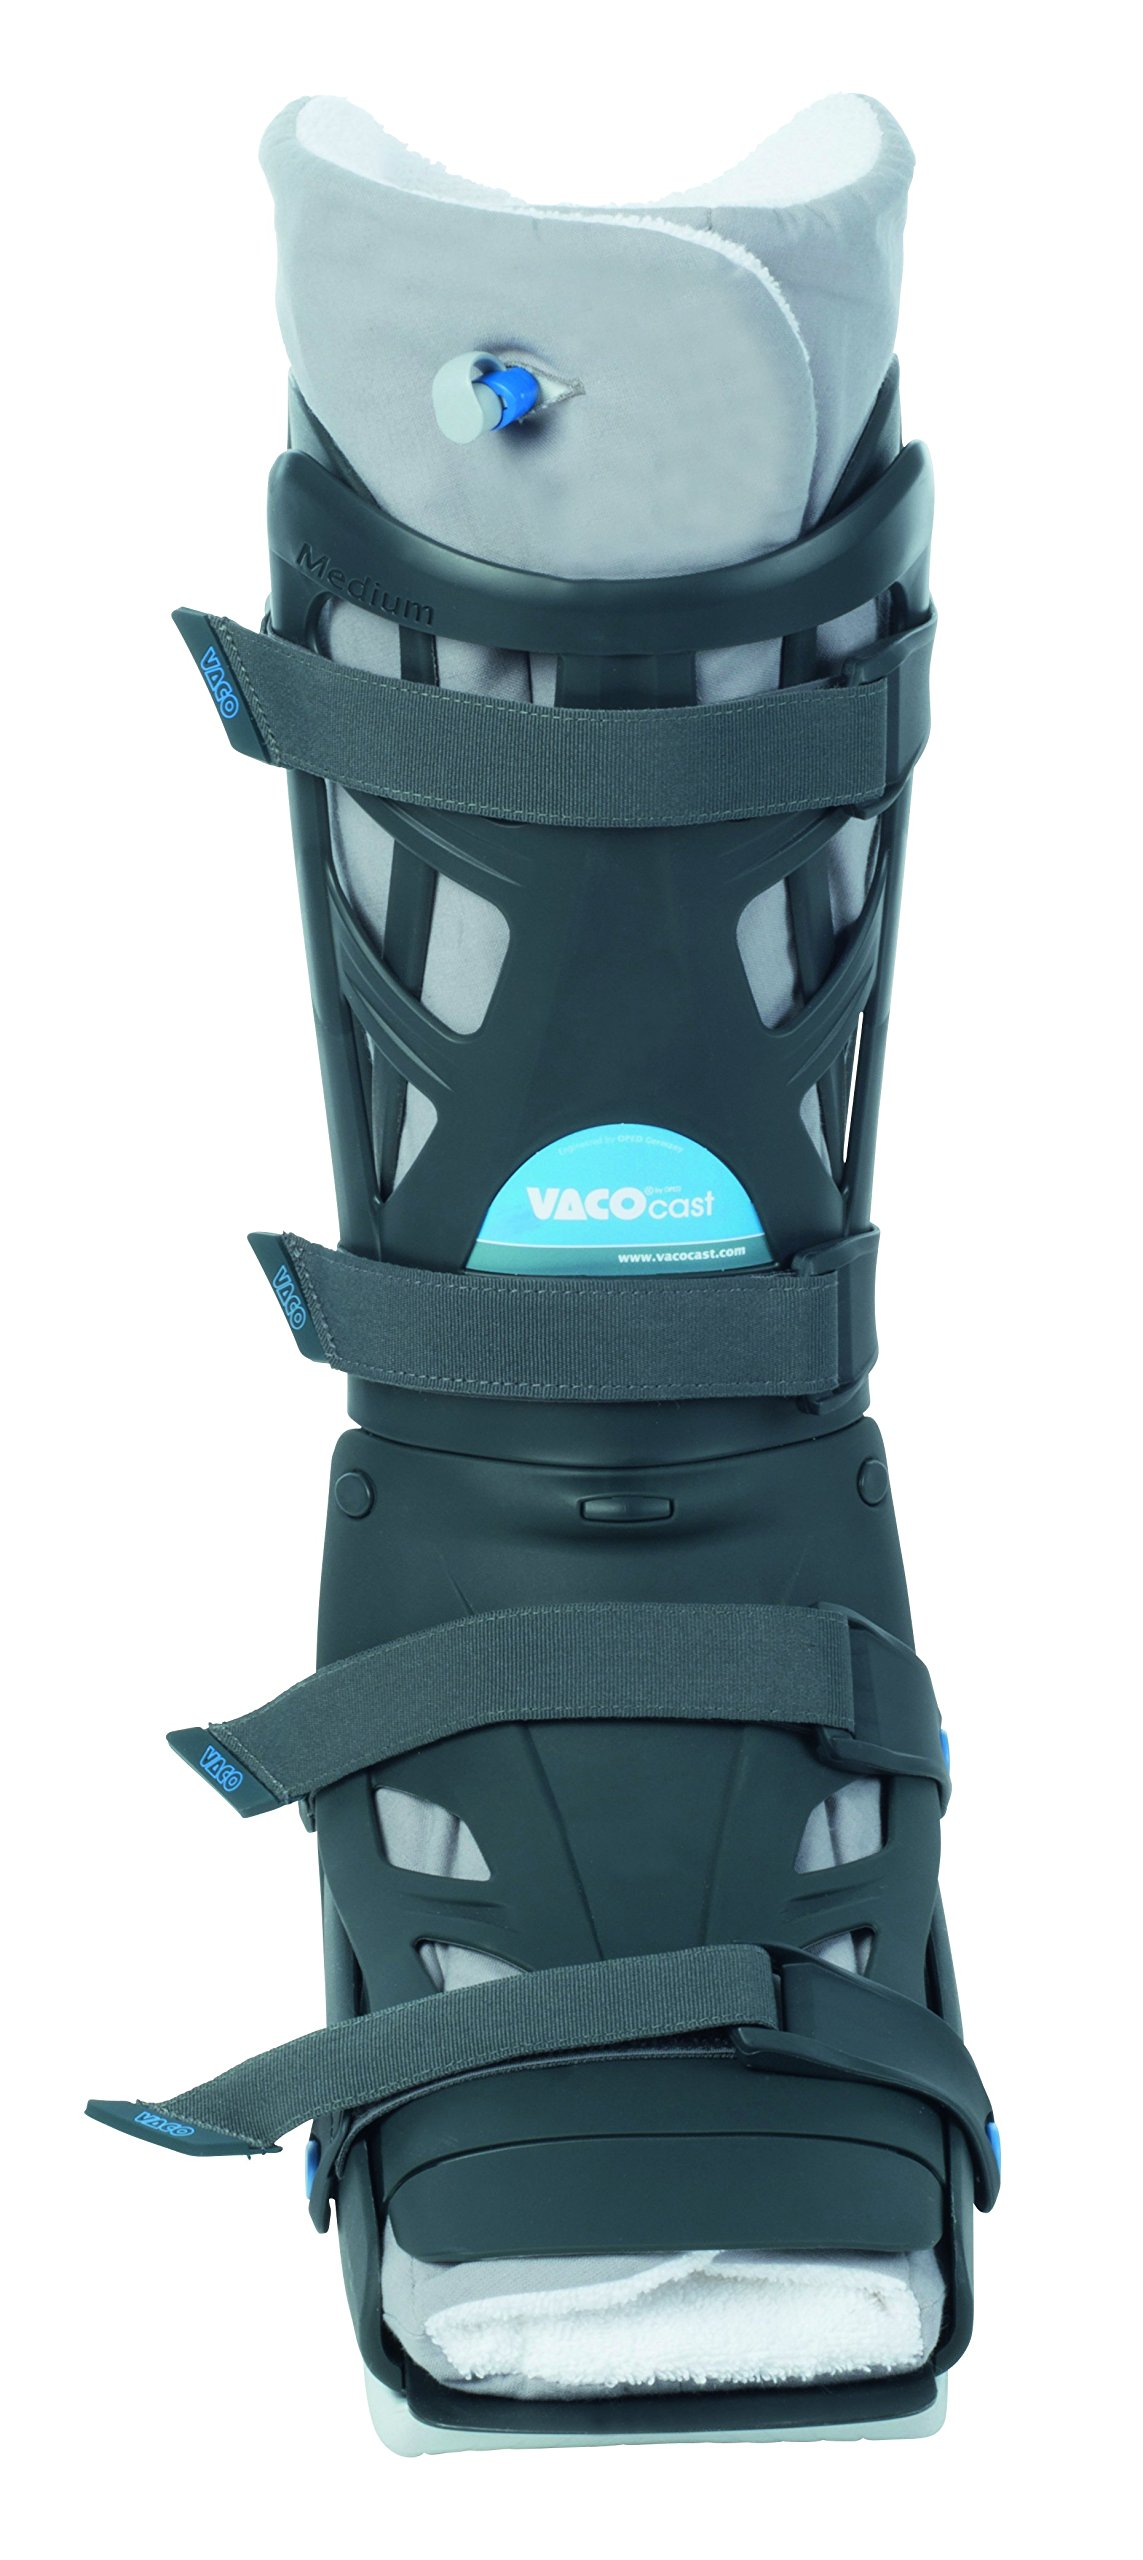 VACOcast Fracture Orthosis Walking Boot (formerly VACOcast Fit) Men's & Women's - The most comfortable boot on the market!